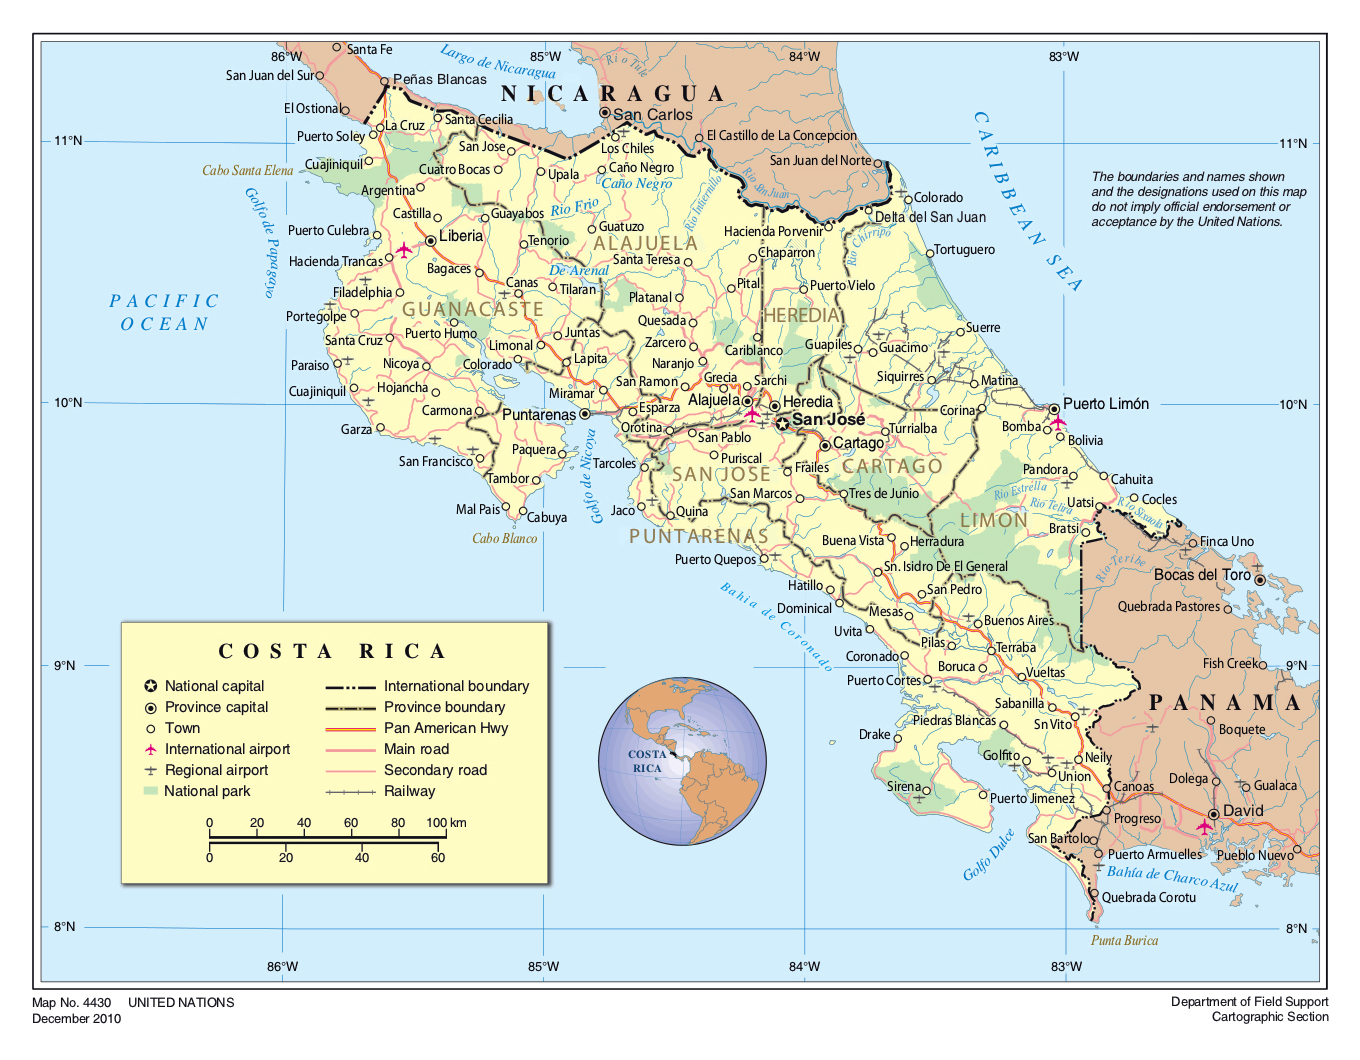 costa rica political map Detailed Political And Administrative Map Of Costa Rica With Roads costa rica political map